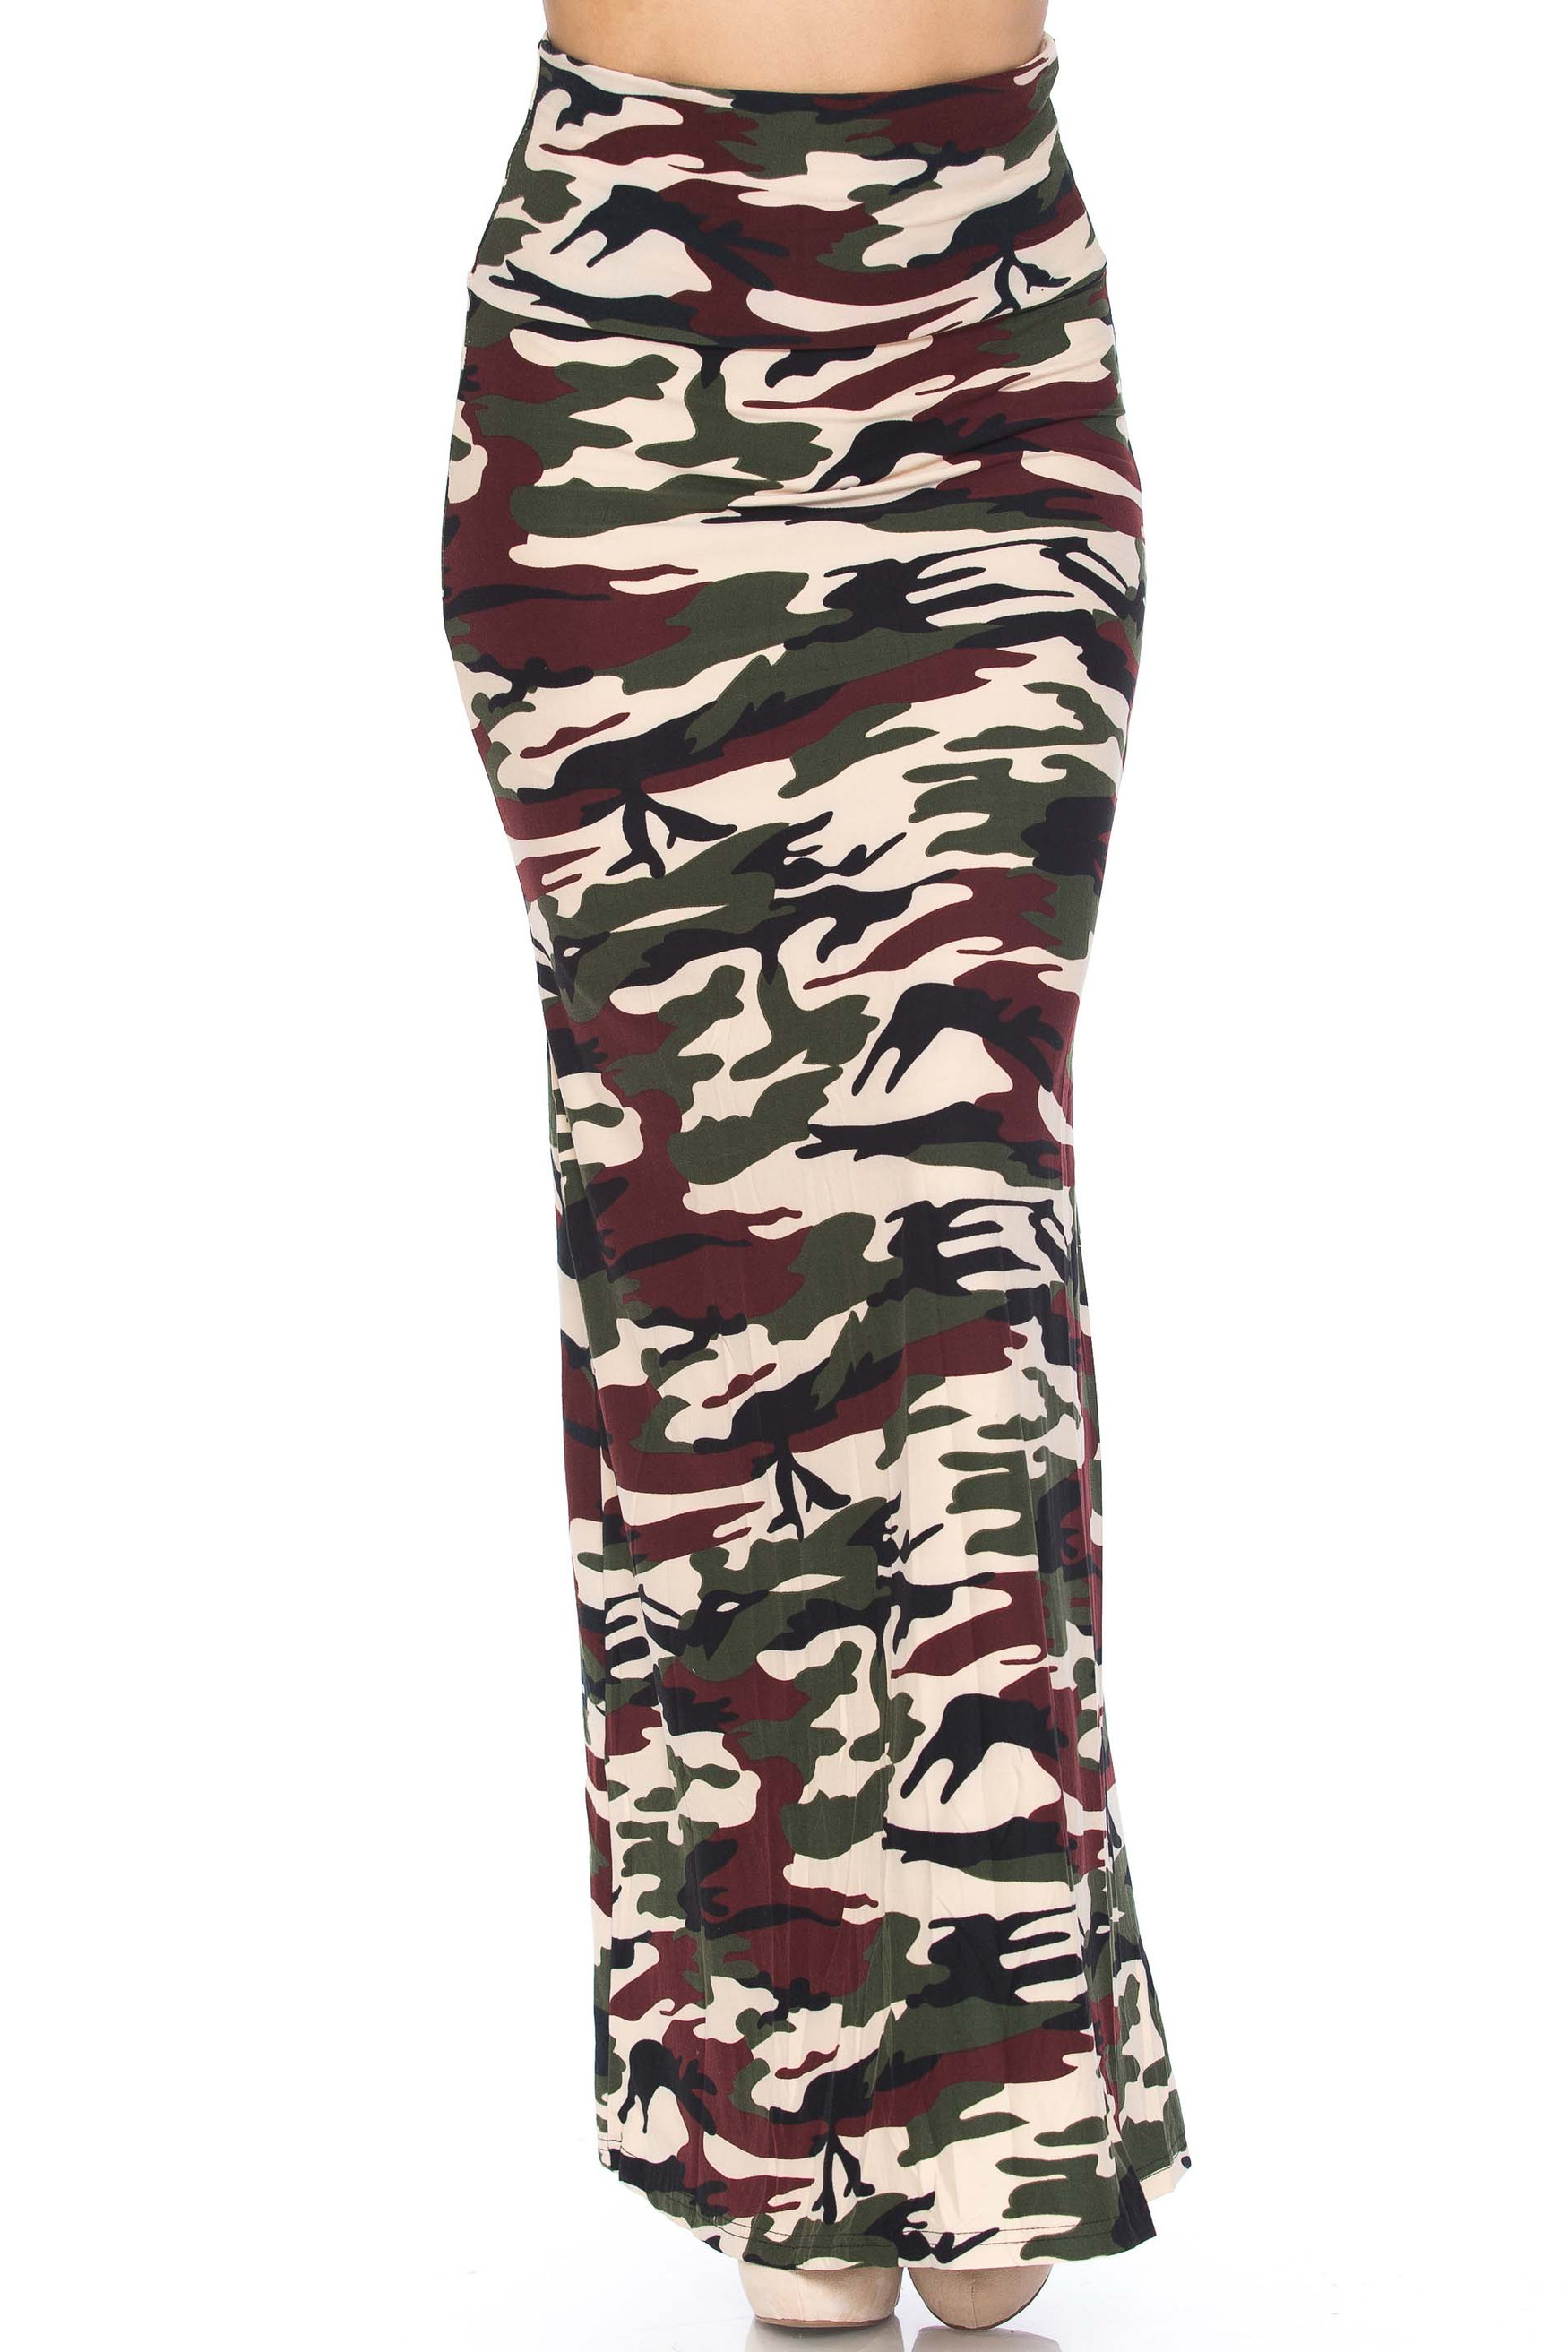 Cozy Camouflage Buttery Soft Maxi Skirt